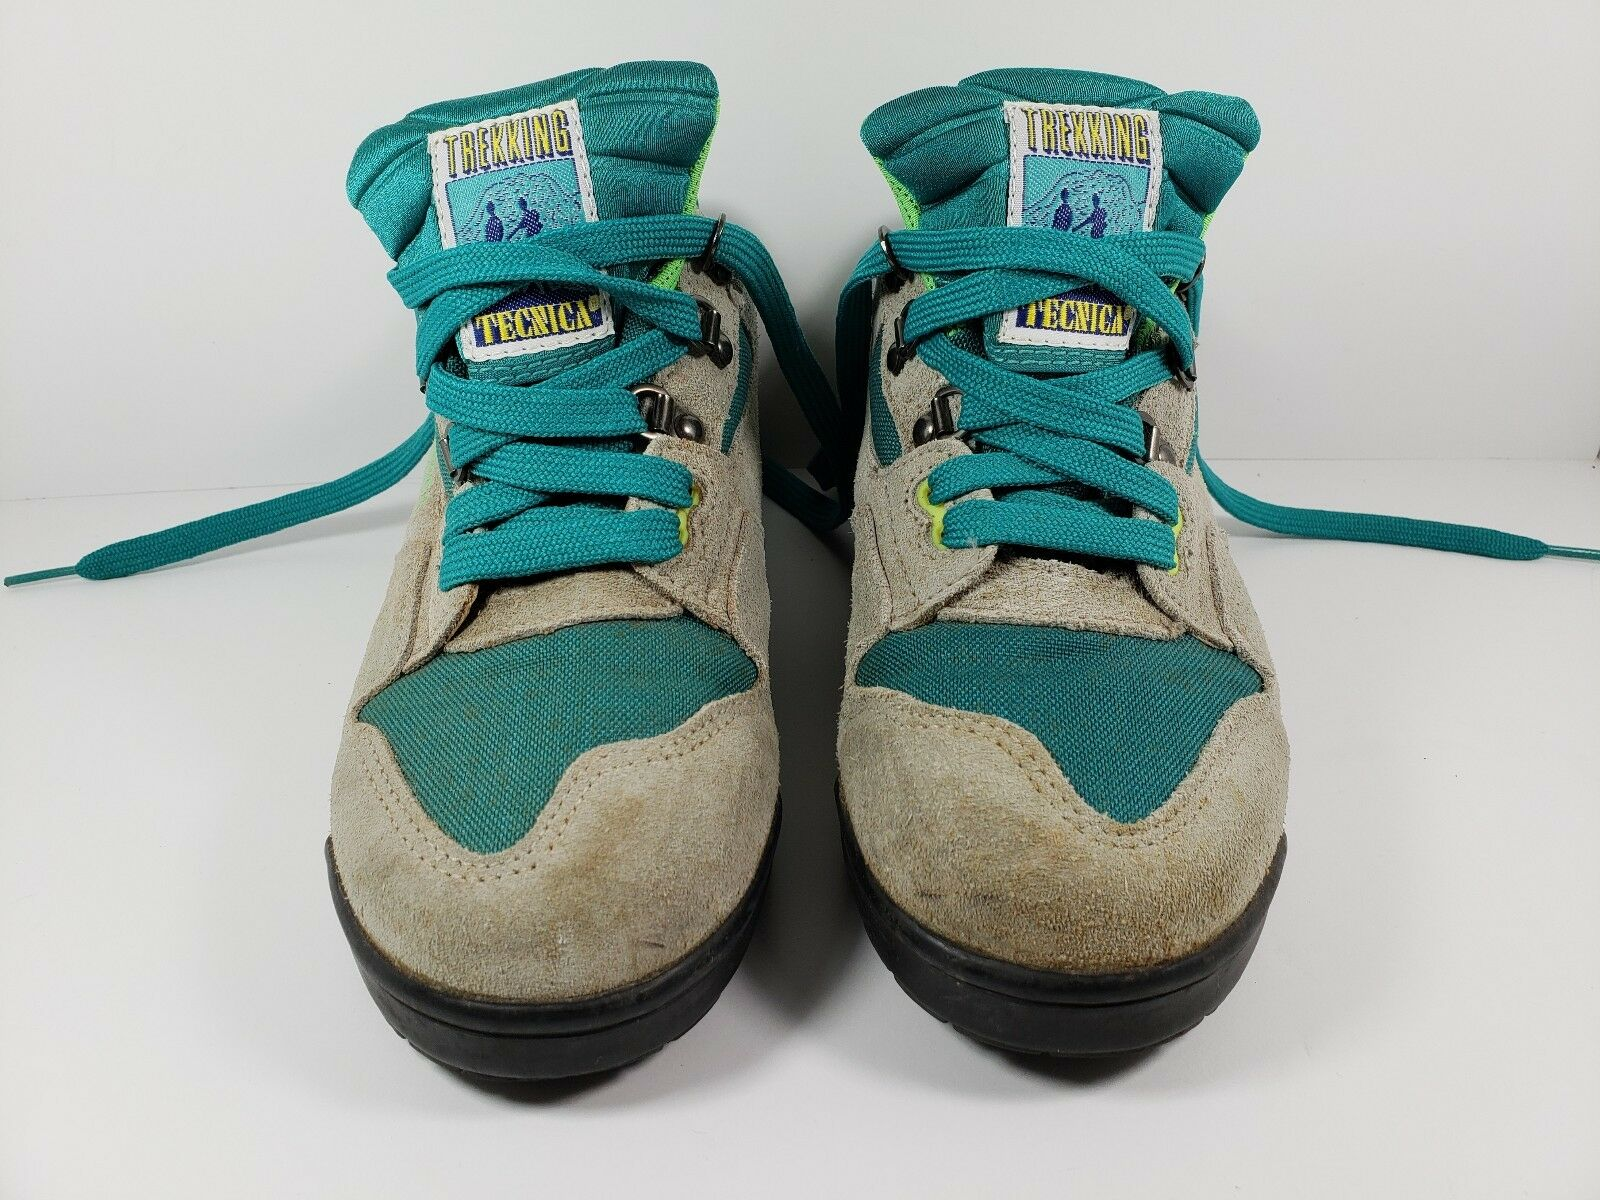 Vintage Trekking  Tecnica Hiking shoes Womens Size 7.5 Air Flow System  sale online save 70%